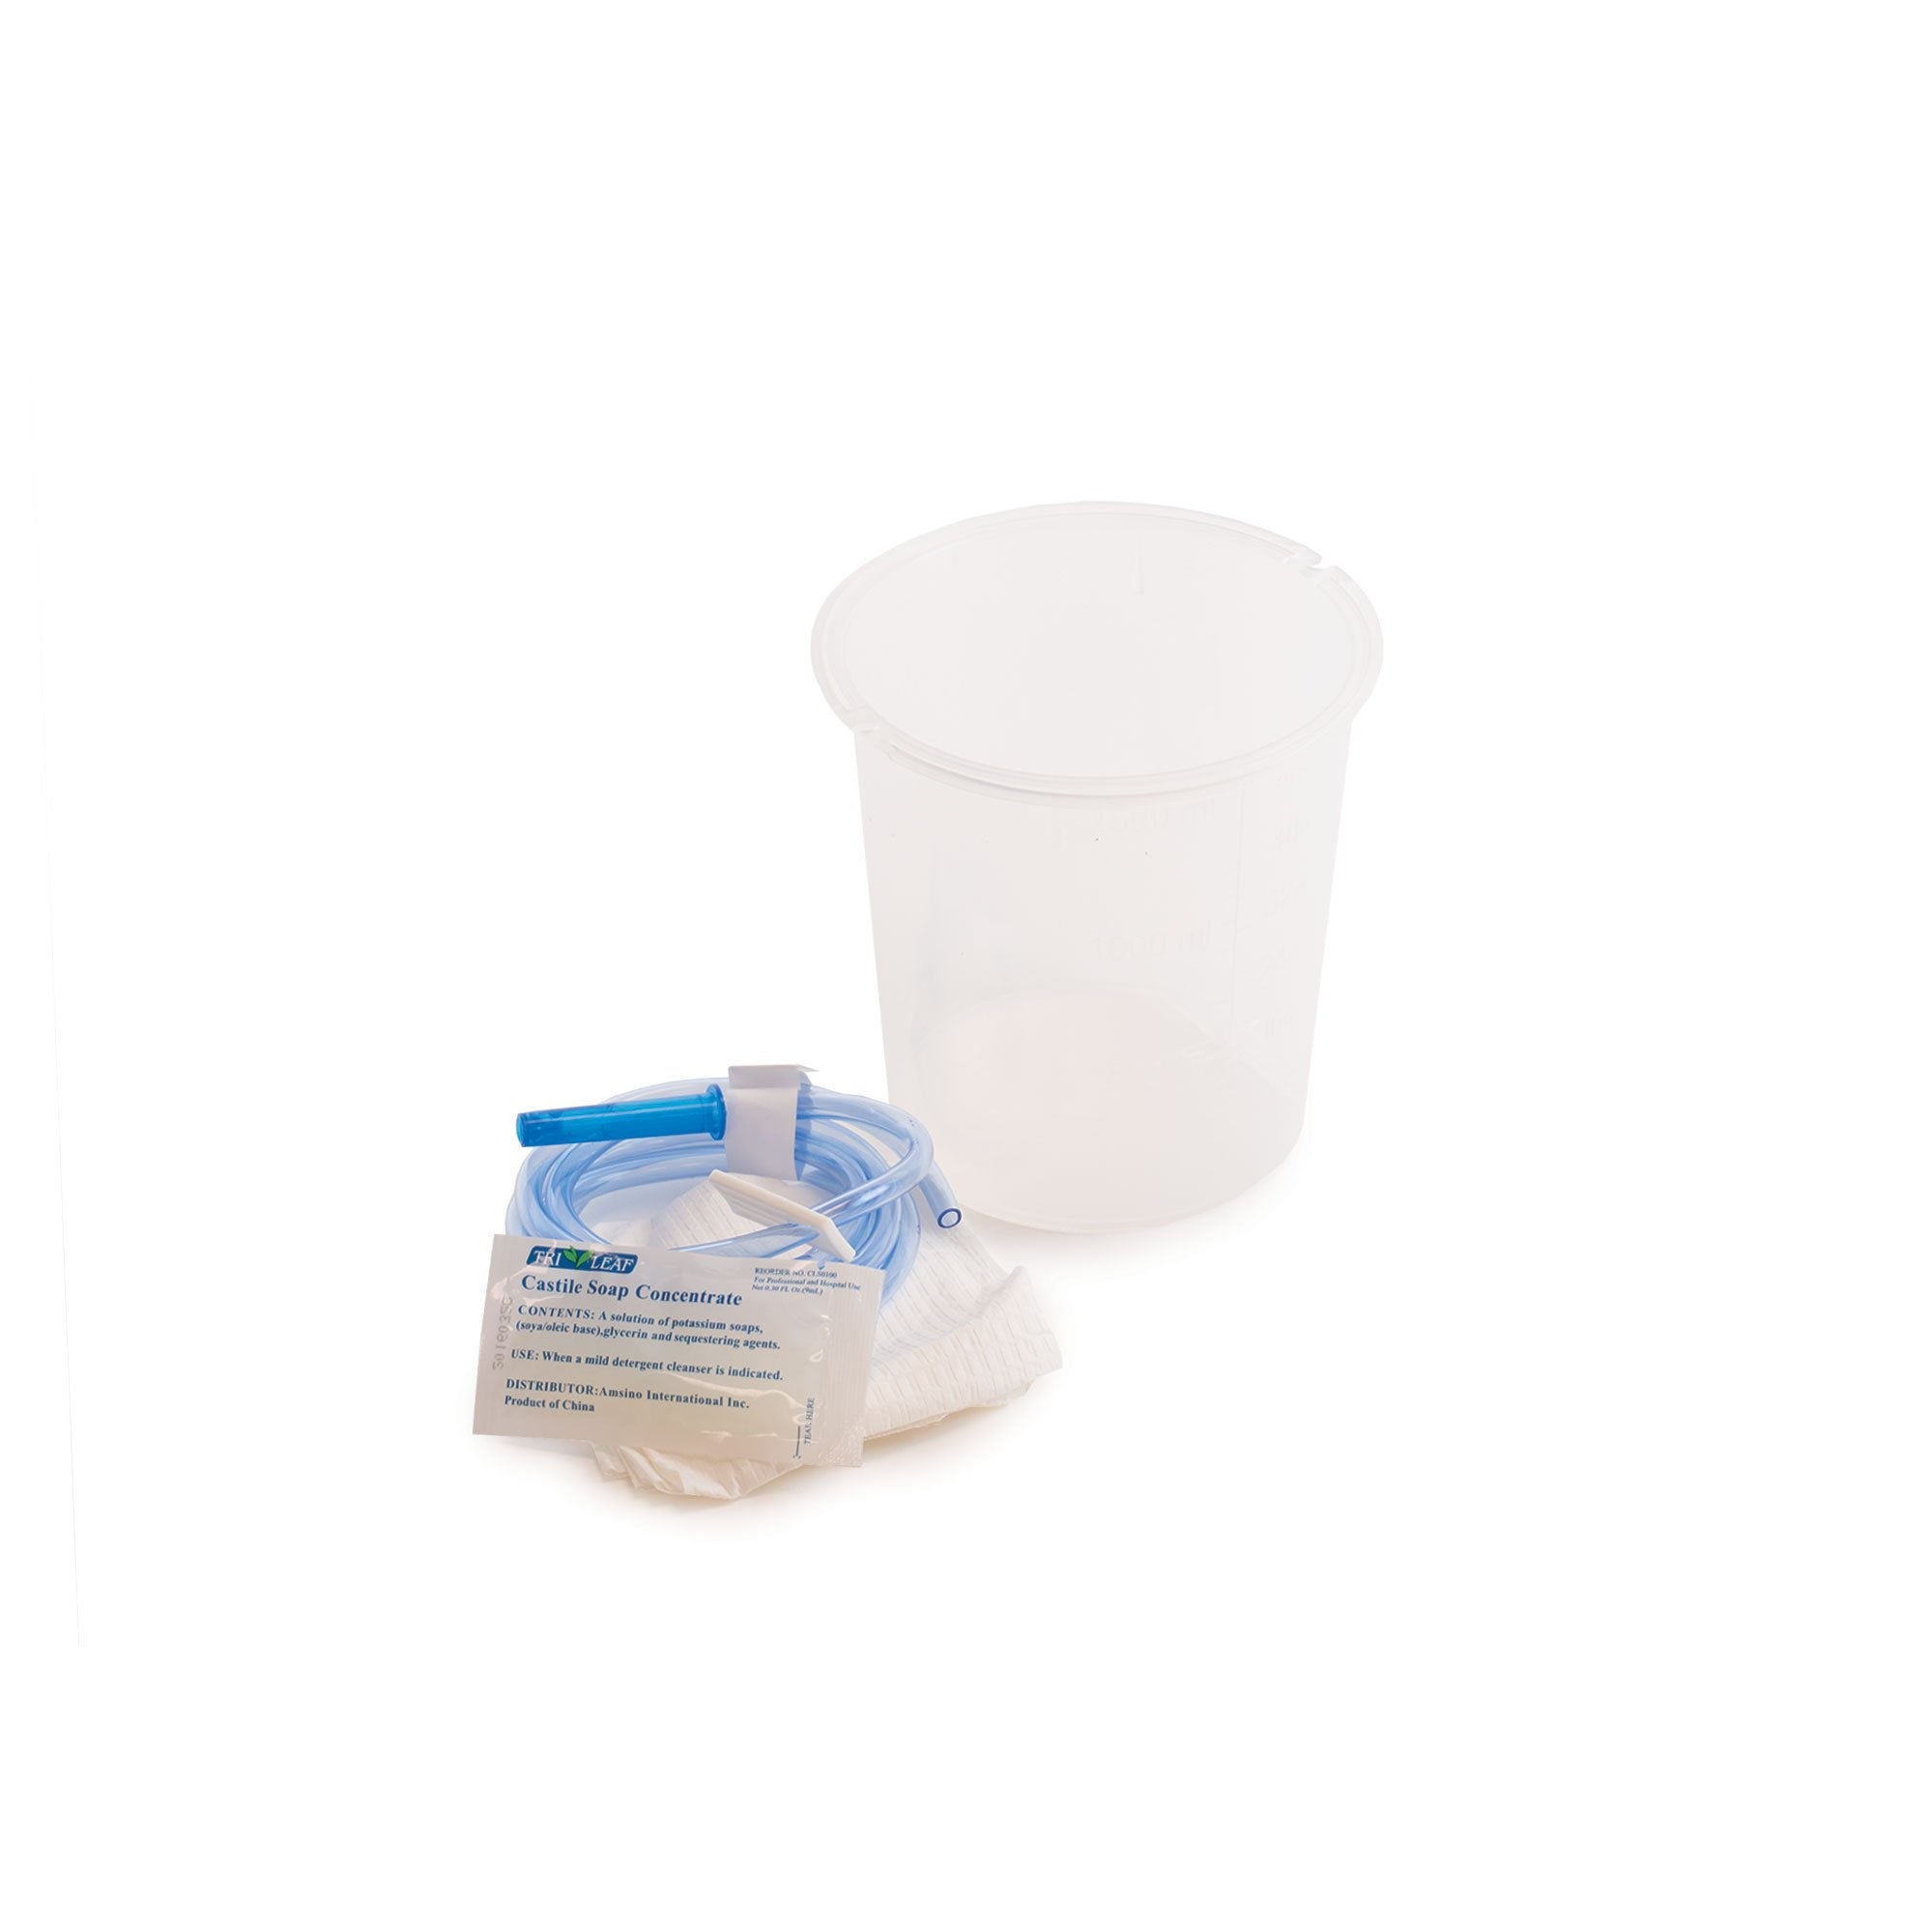 Cleansing Enema Set w/1500ml Bucket by Medegen Medical Products, Llc